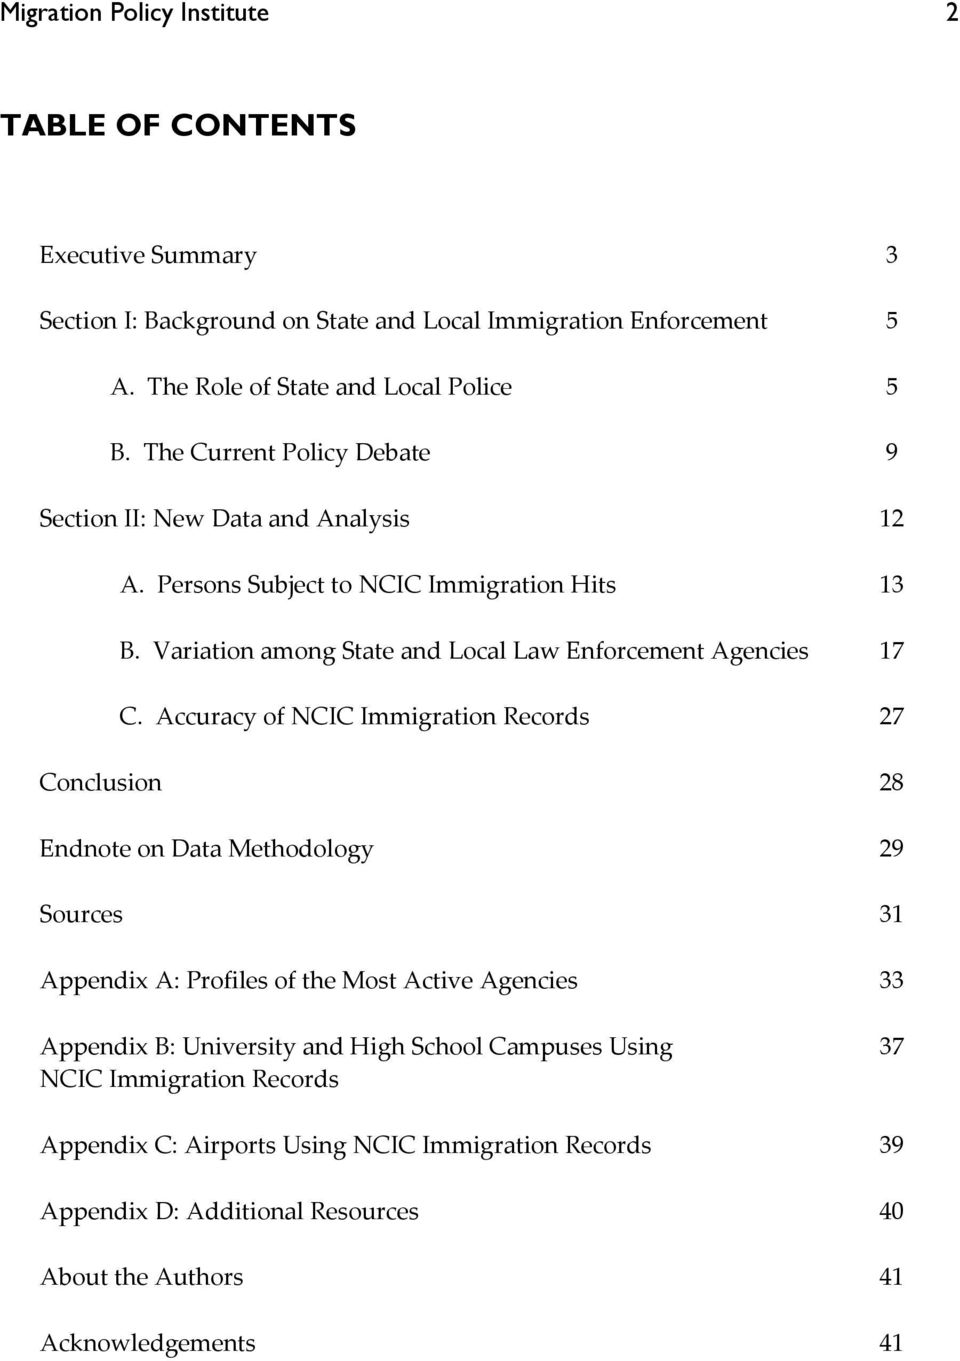 Accuracy of NCIC Immigration Records 27 Conclusion 28 Endnote on Data Methodology 29 Sources 31 Appendix A: Profiles of the Most Active Agencies 33 Appendix B: University and